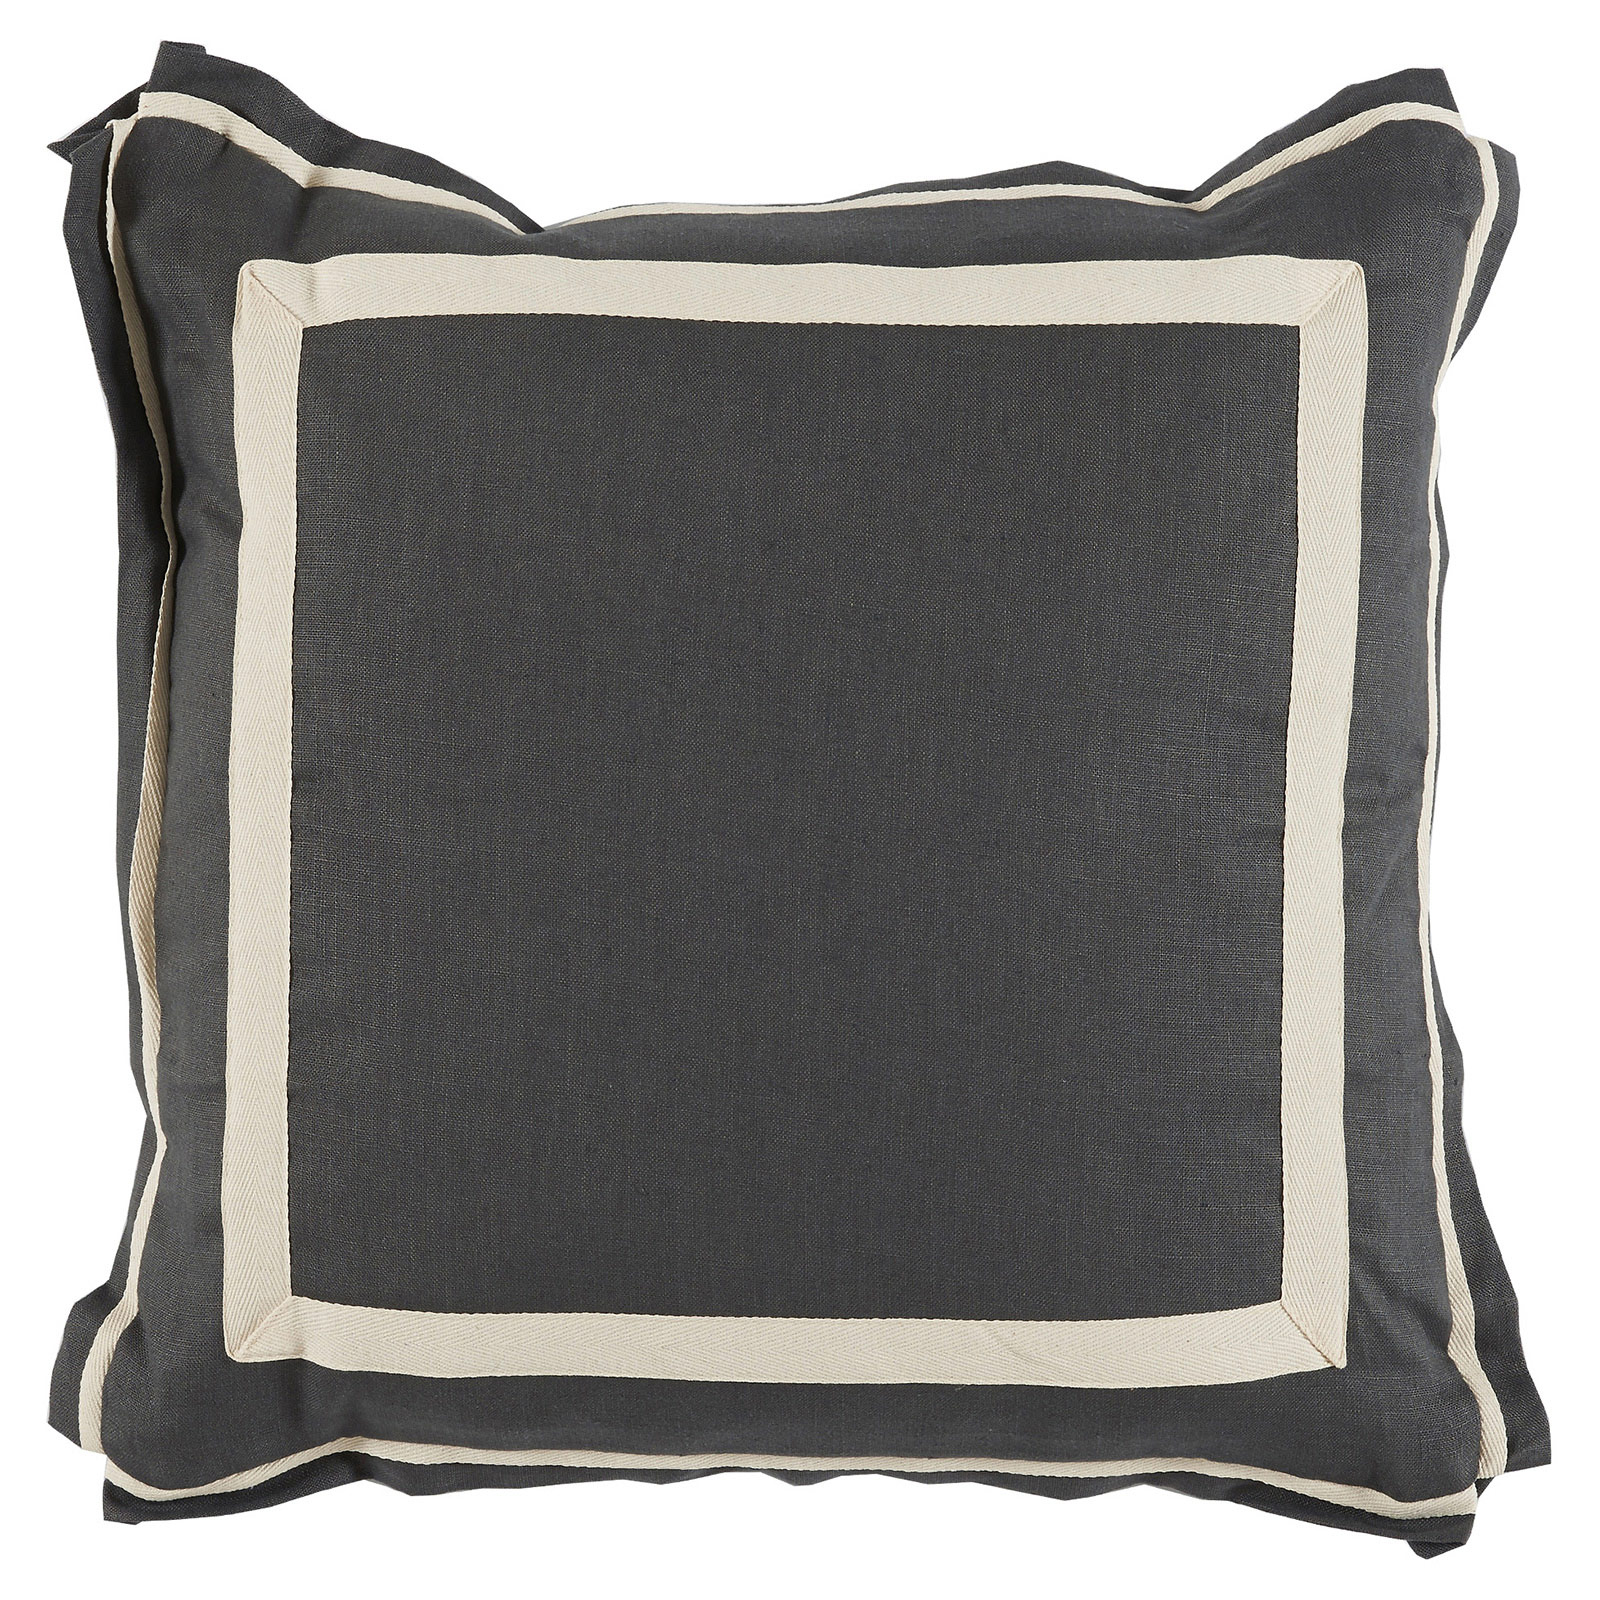 Donnie Coastal Modern Twill Charcoal Linen Pillow - 20x20